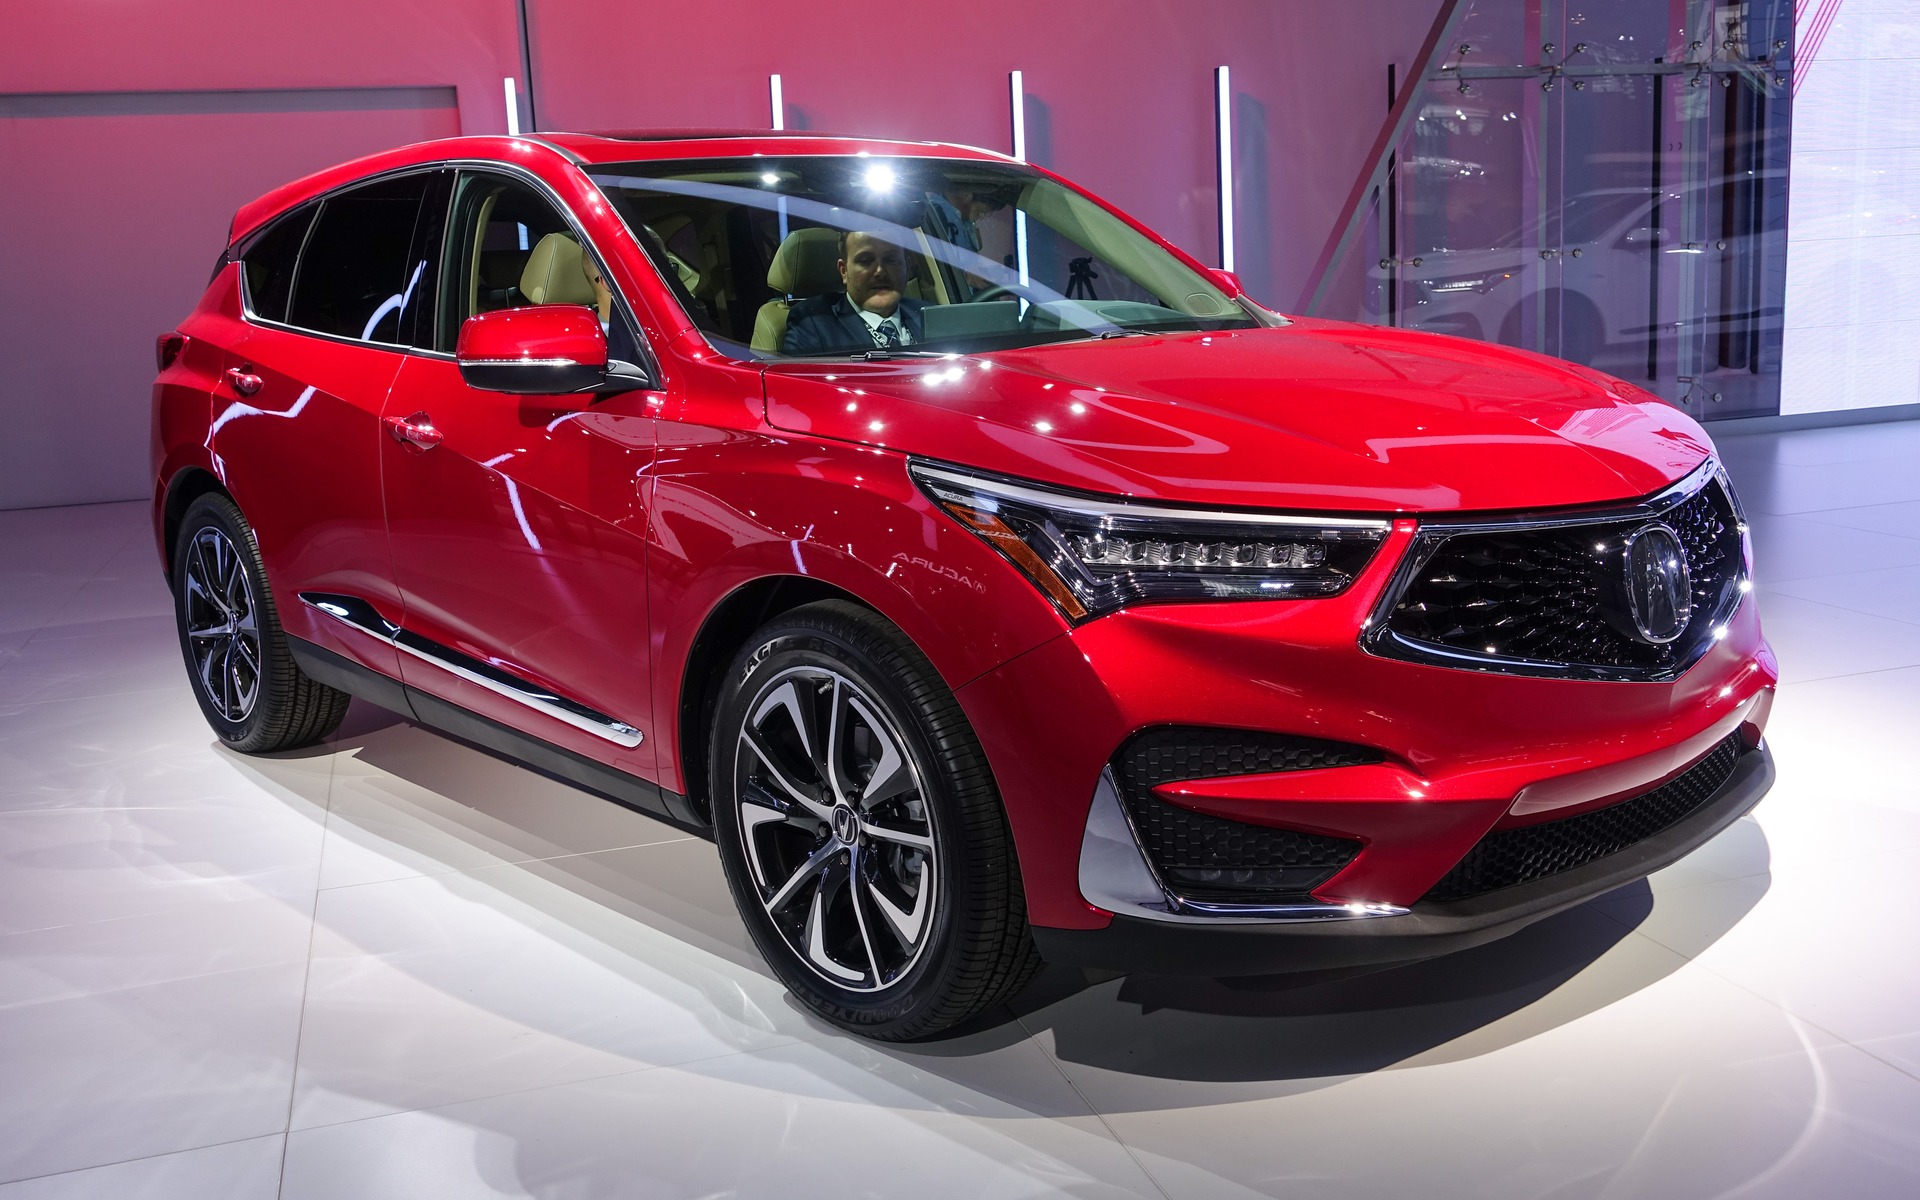 2019 Acura Rdx The Third Generation Makes Its World Debut 1 10